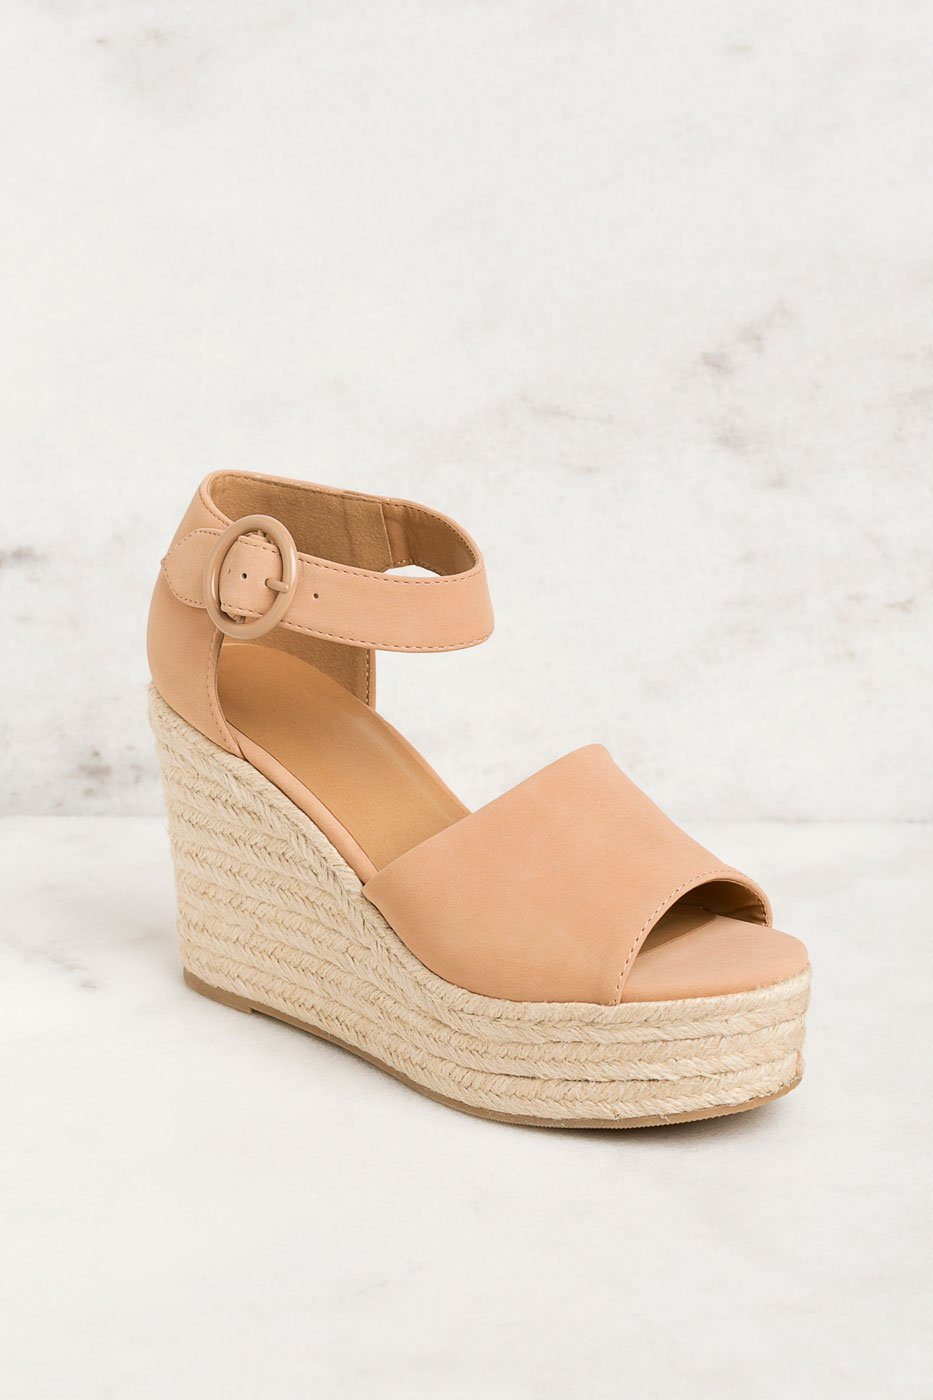 004a9400284 Head In The Clouds Light Tan Wedges